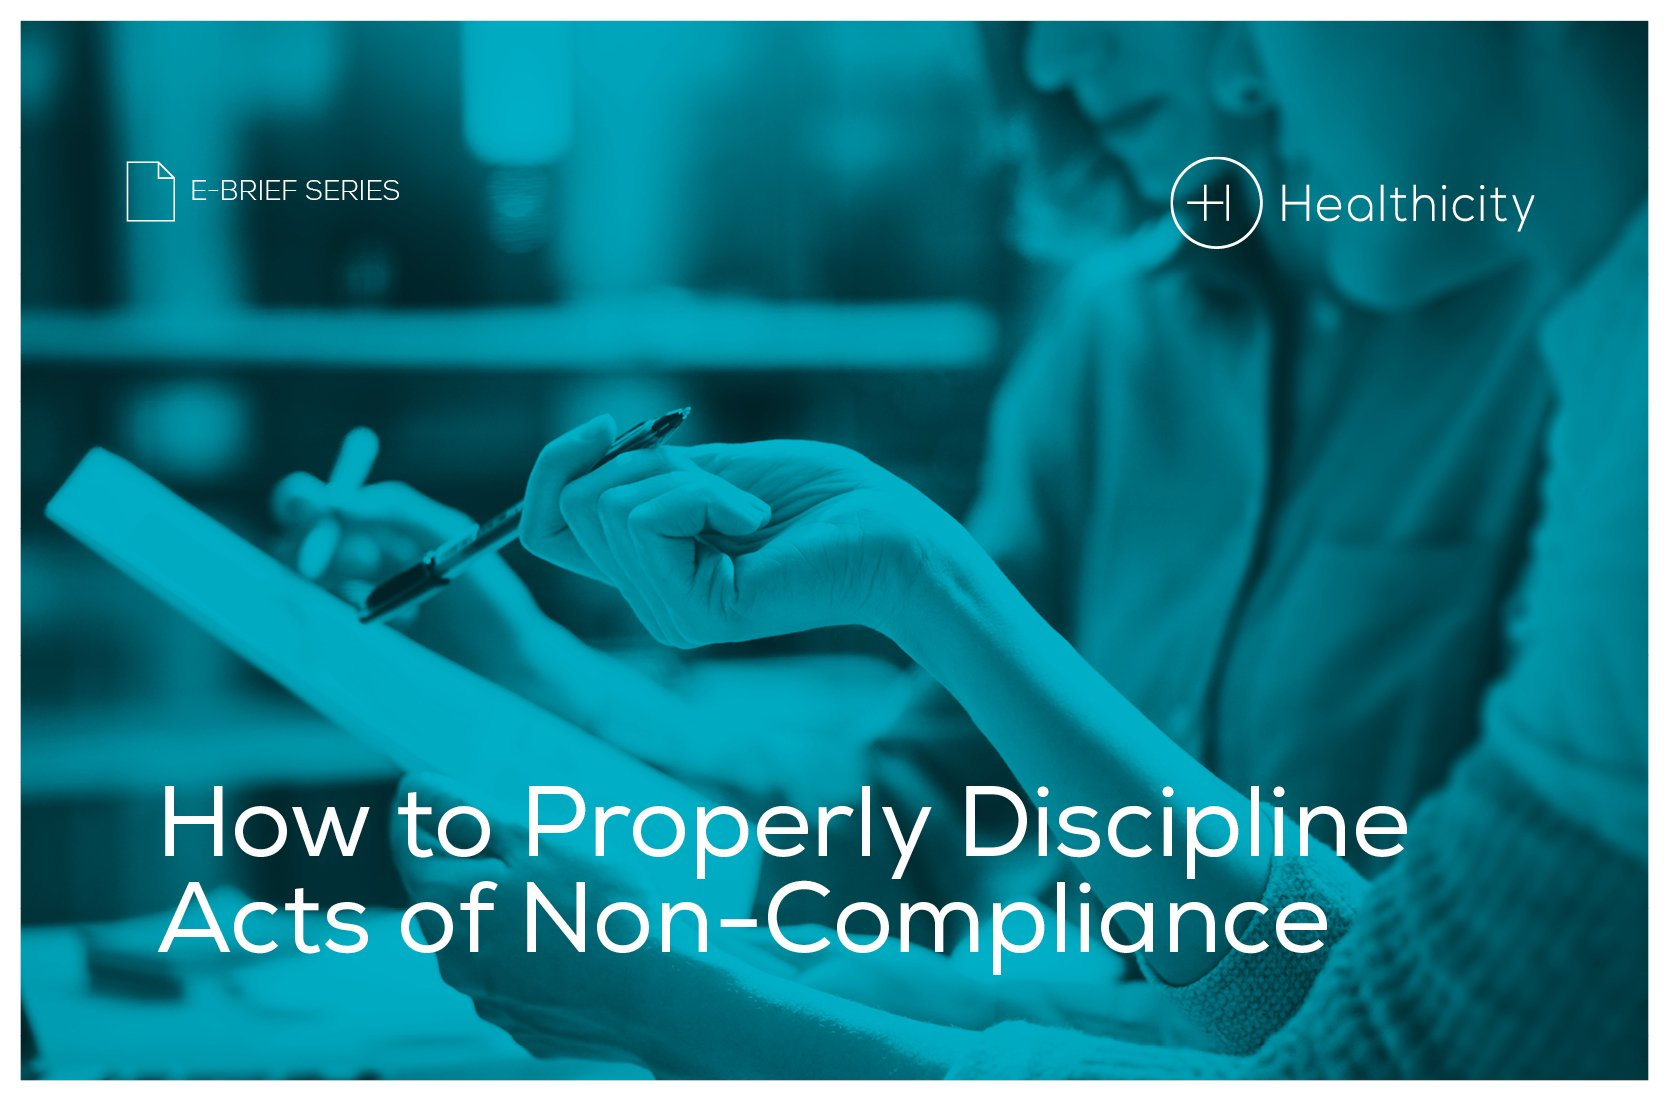 Download 'How to Properly Discipline Acts of Non-Compliance' eBrief